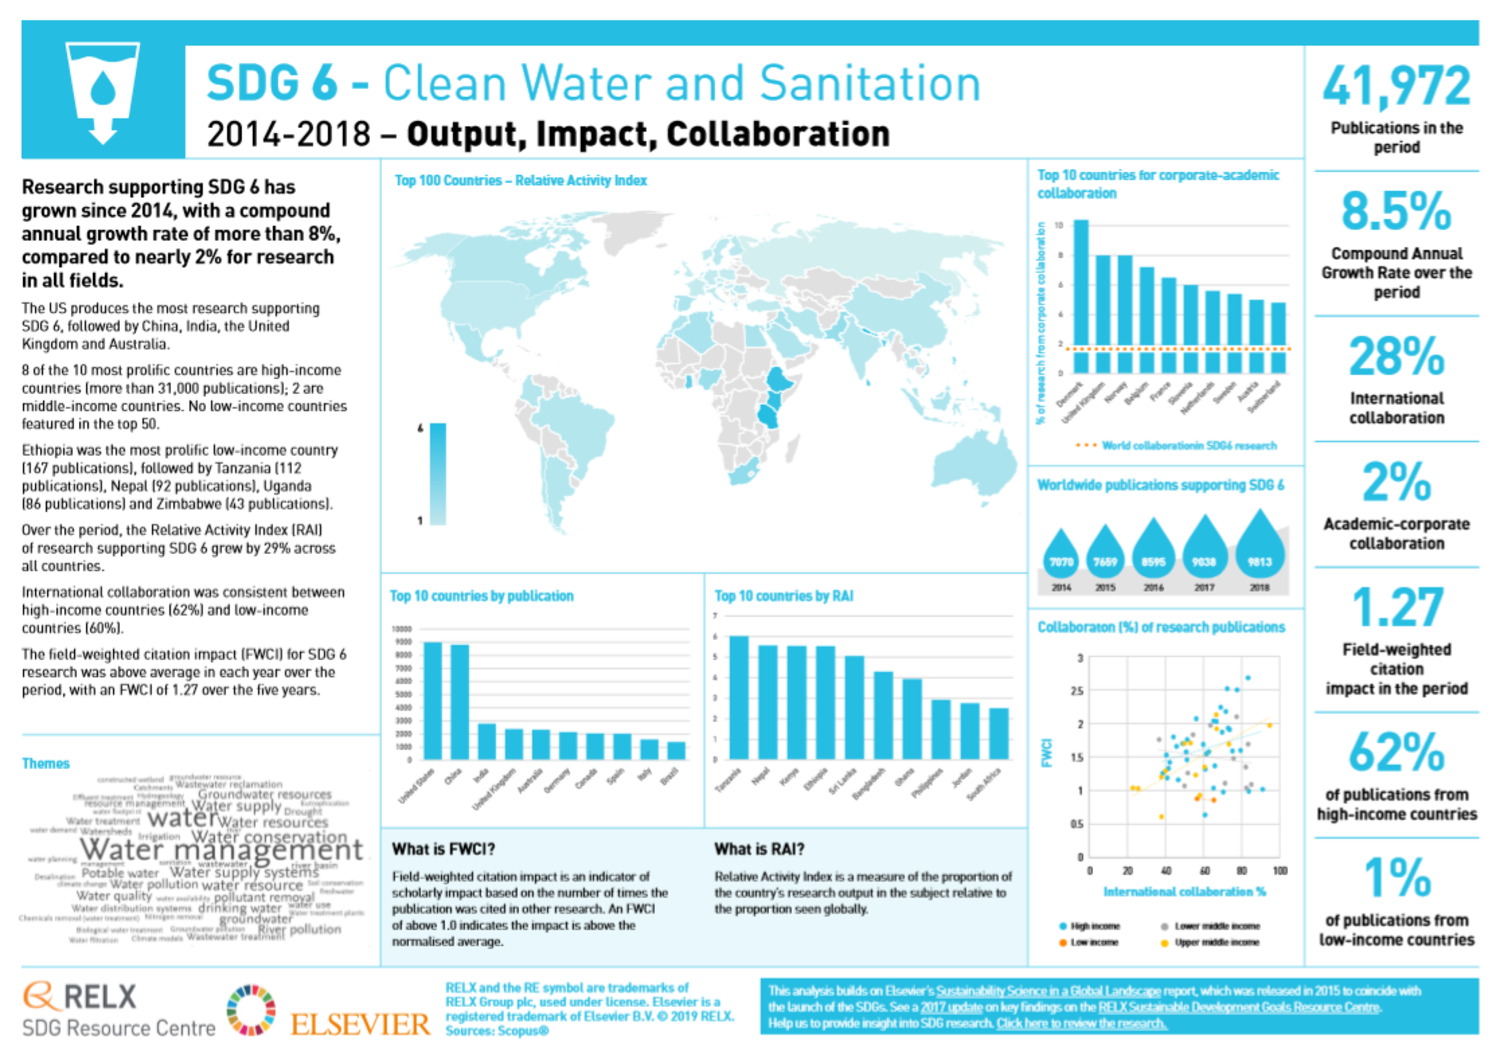 SDG 6: Clean Water and Sanitation graphic showing key metrics for research into clean water and sanitation